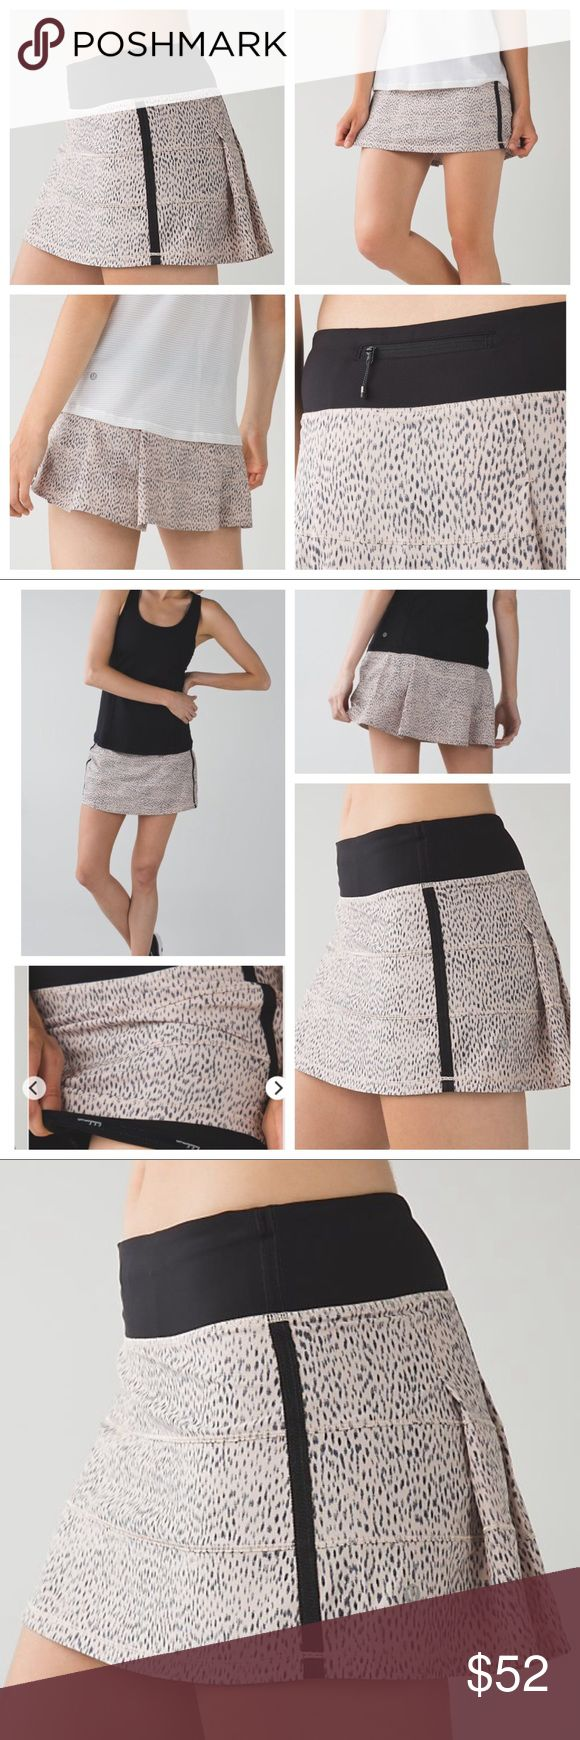 lululemon Dotty Black Pace Rival Skirt II Brand new with tags. Lululemon: Why we made this - We made this breezy skirt so we can go from the trails to the court without slowing down. We added built-in shorts that are stretchy and sweat-wicking so that we can move, sprint and twist to our heart's content. We may have met our match! Color is nude/rose pink with black.  Key features: updated slim fit designed to feel light and keep you covered, Swift Ultra fabric lululemon athletica Skirts Mini